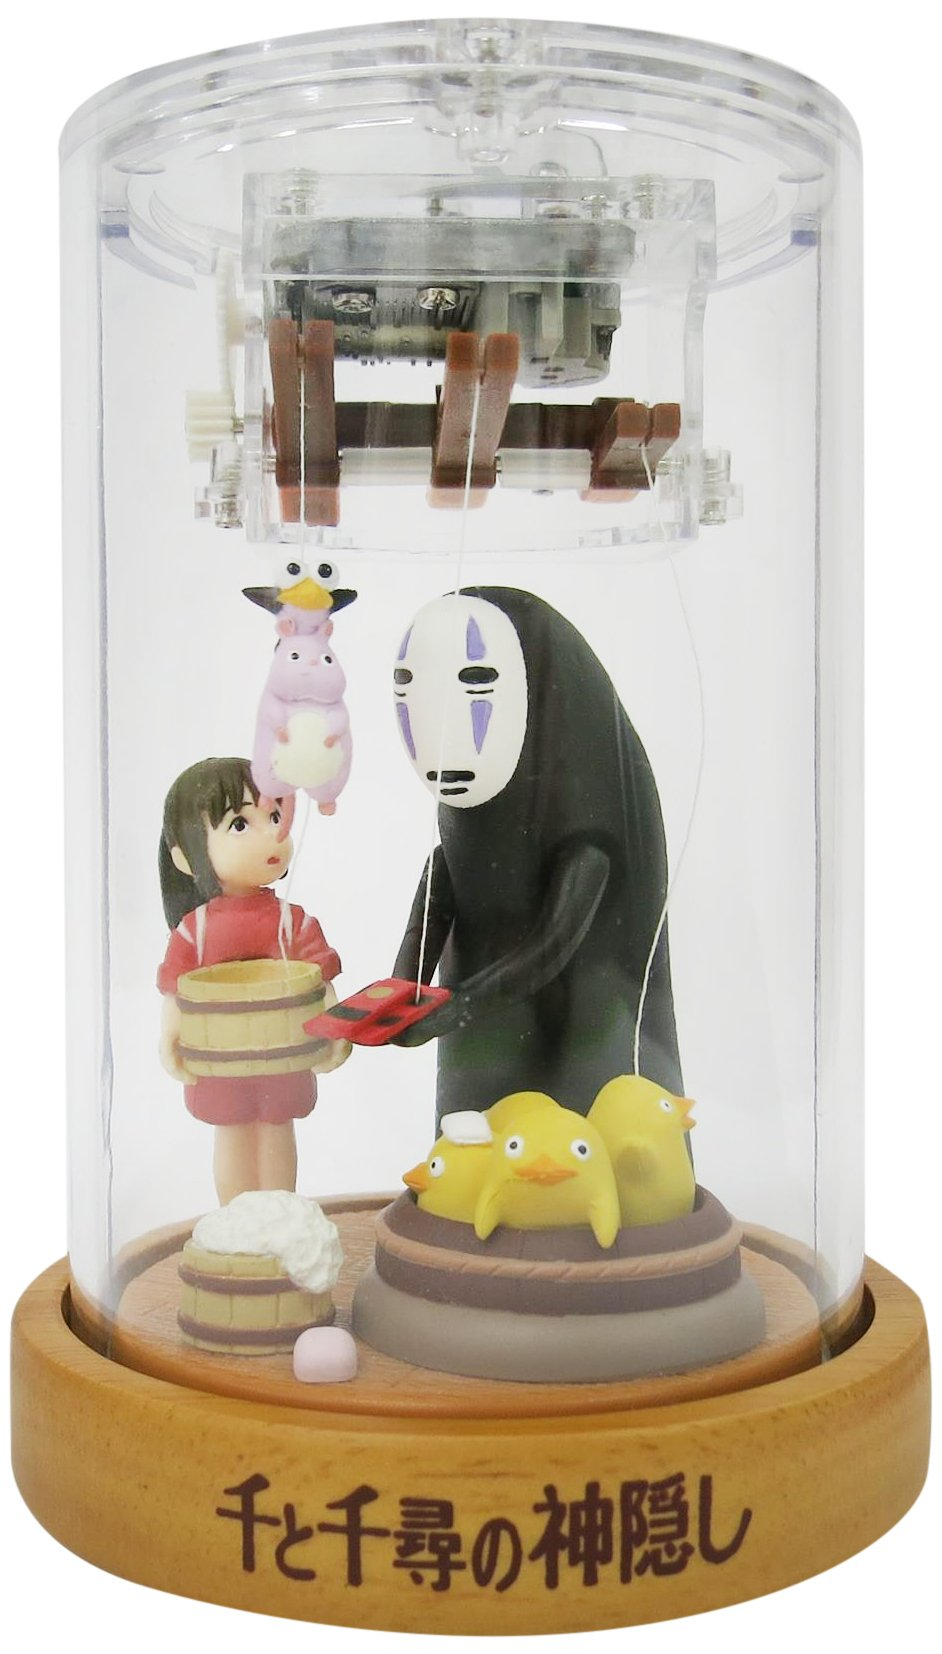 Studio Ghibli Music Box Kaonashi No-Face (Spirited Away) by Sekiguchi